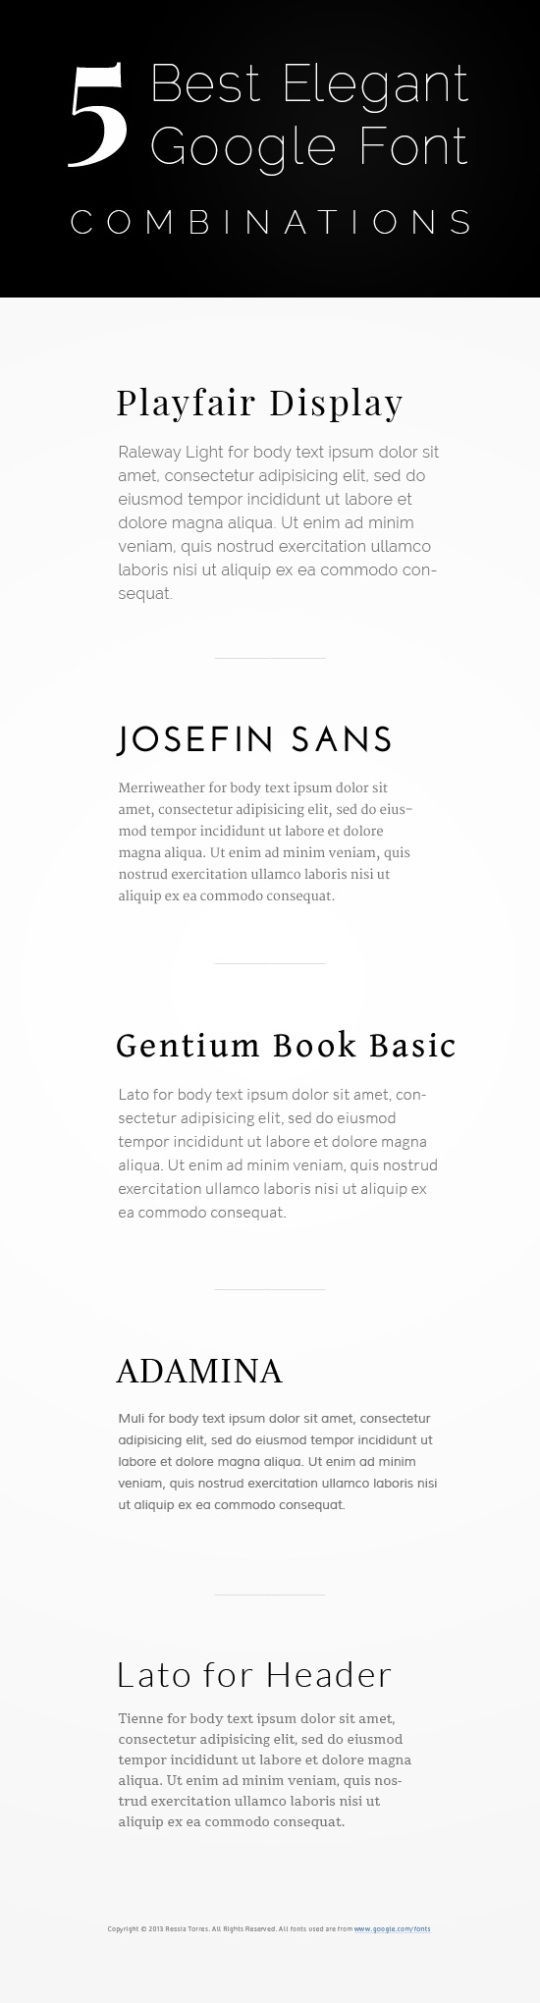 5 Best Elegant Google Font Combinations | Typography for Bloggers ...